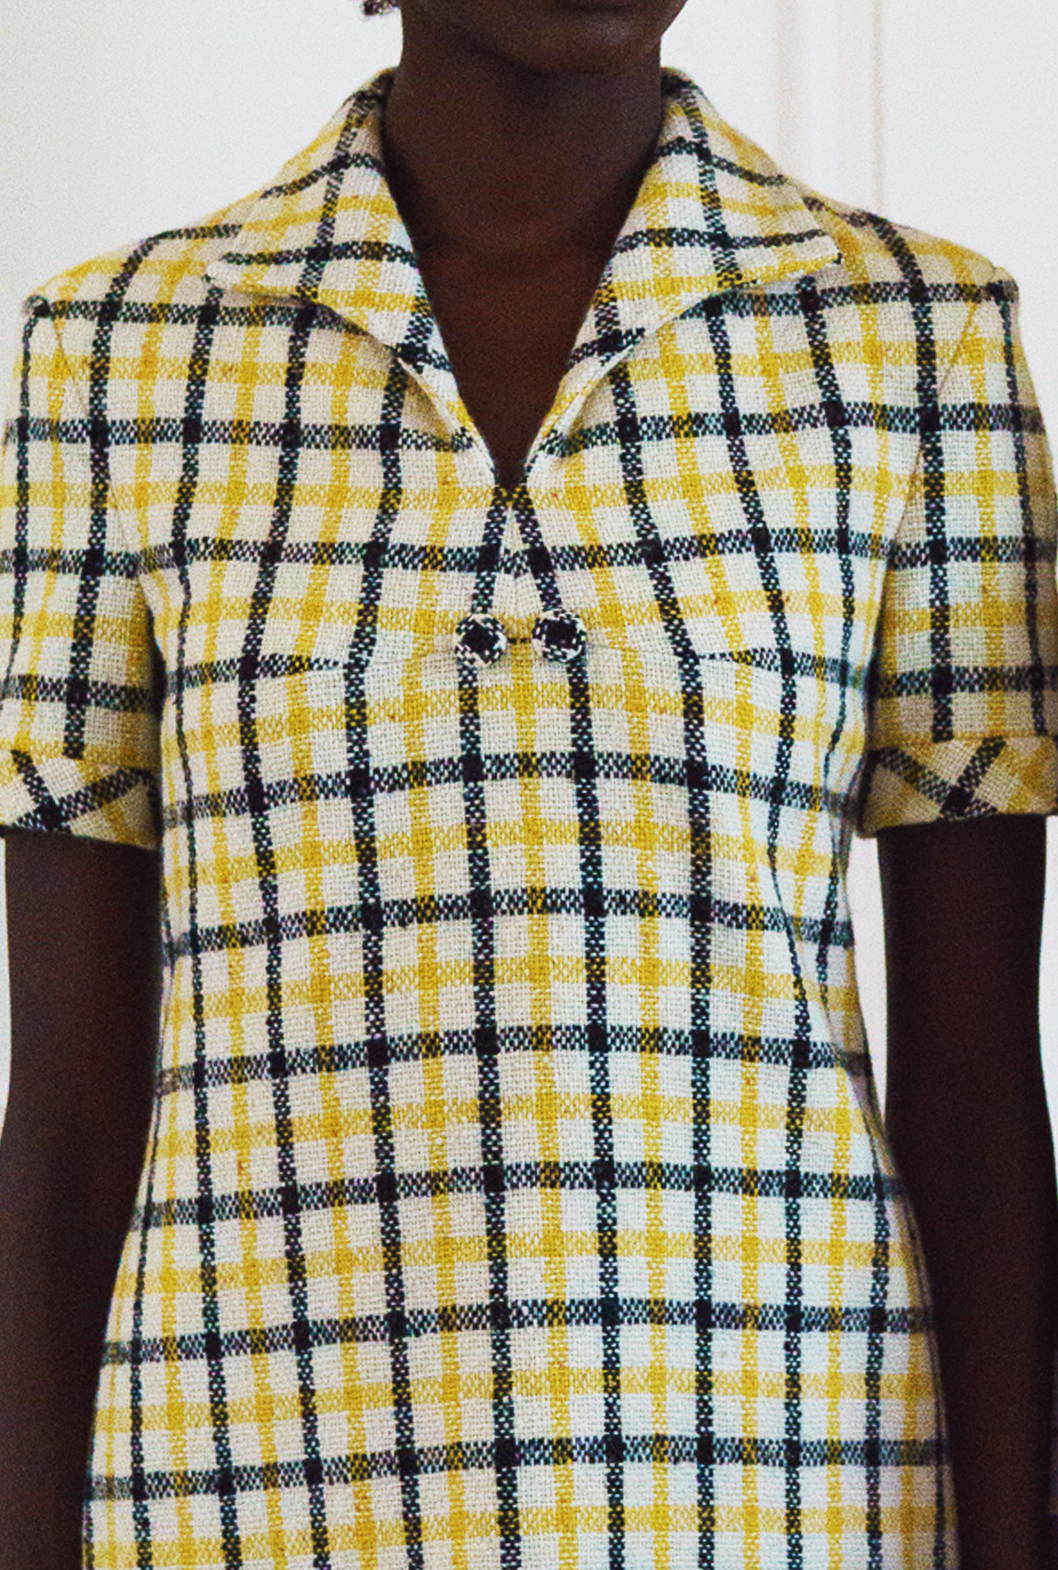 8 M Yellow Plaid Shift Dress Detail.png